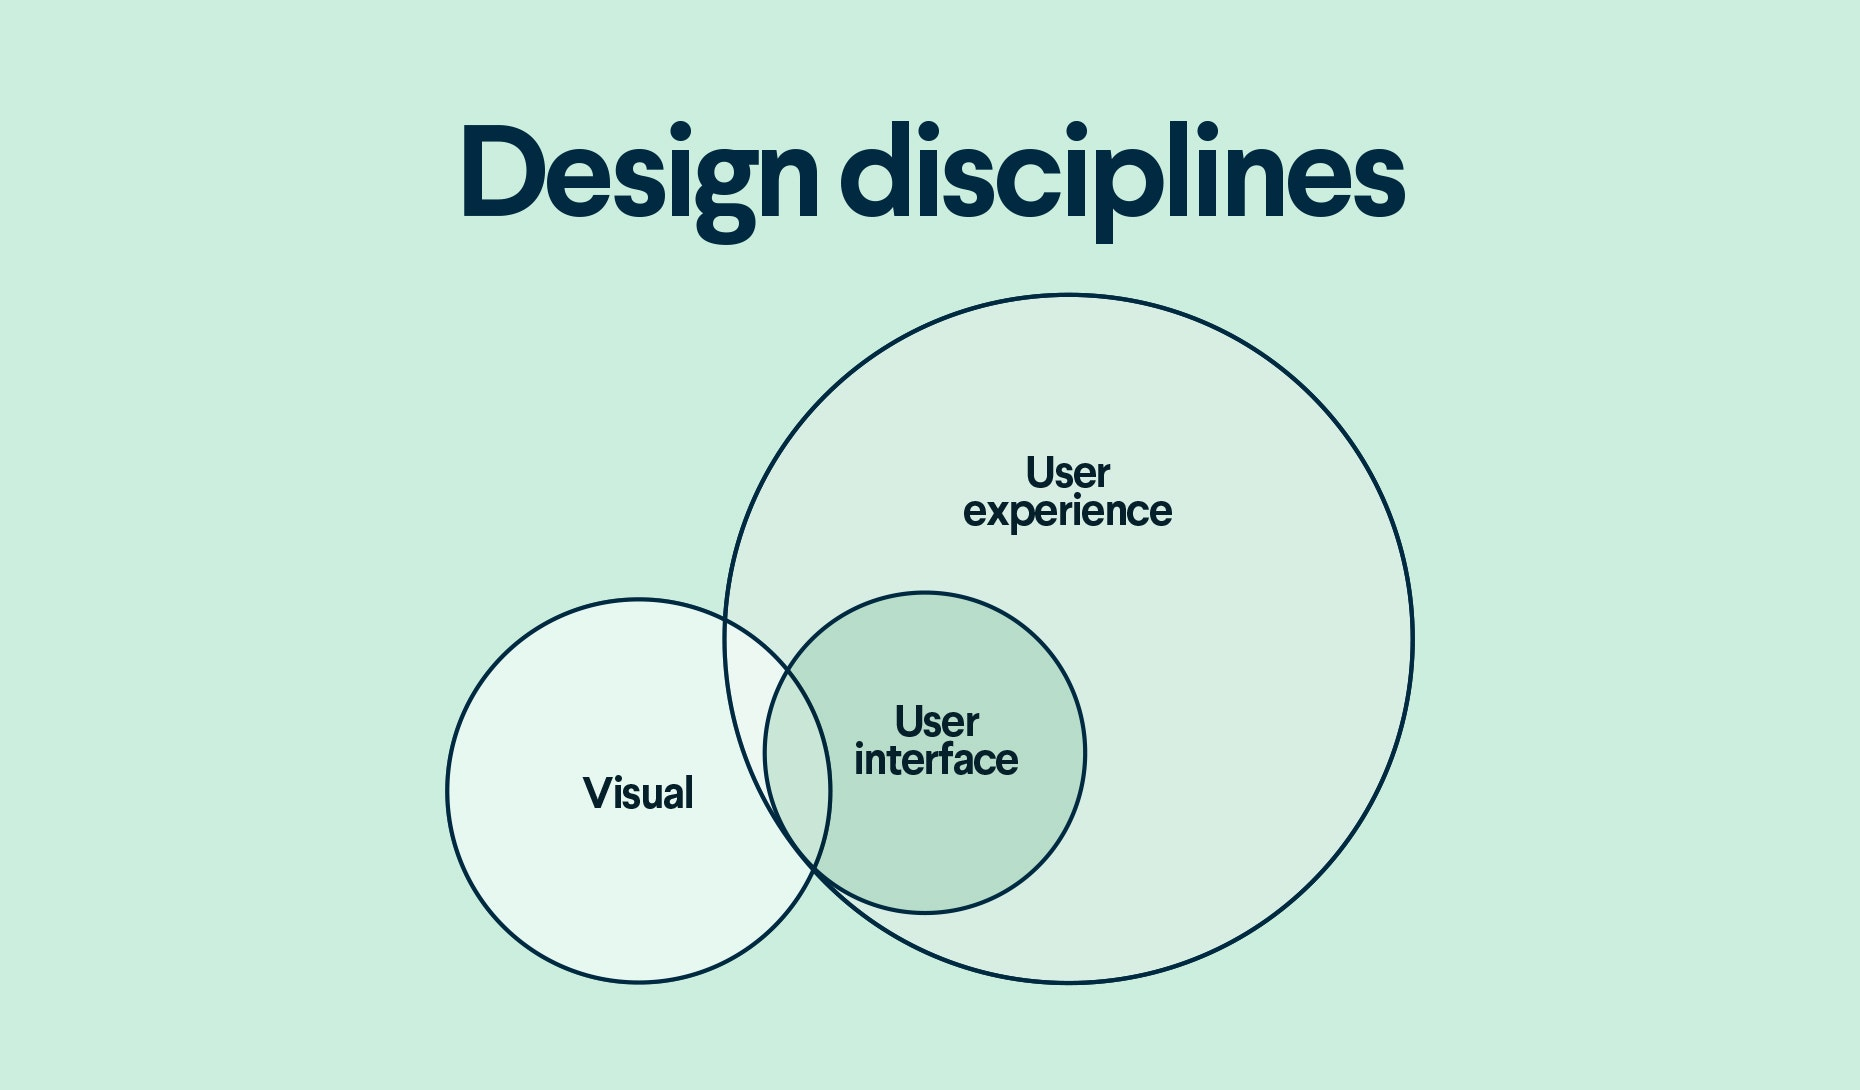 Venn diagram showing overlap of design disciplines